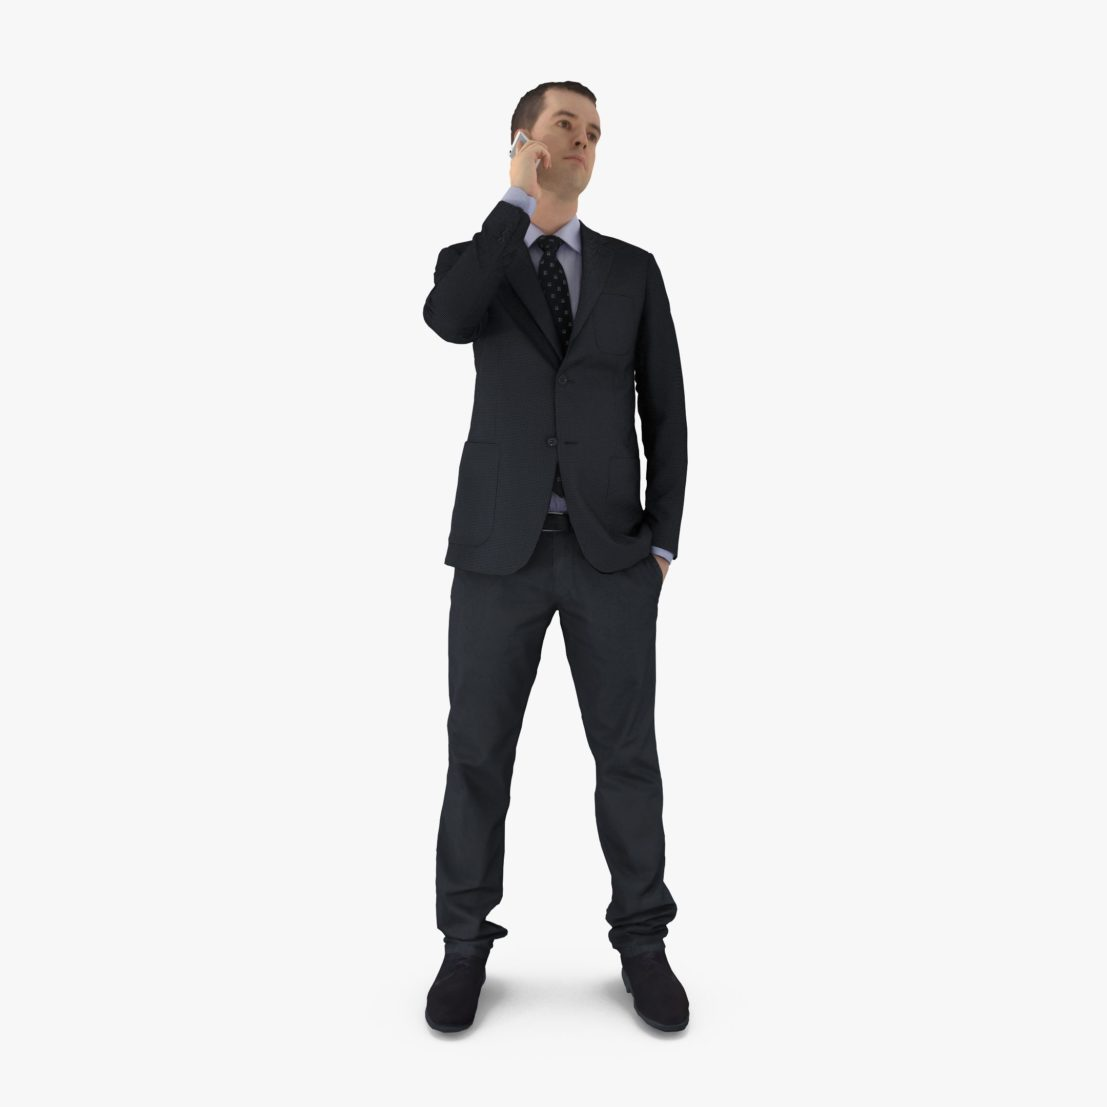 Businessman Phones 3D Model | 3DTree Scanning Studio